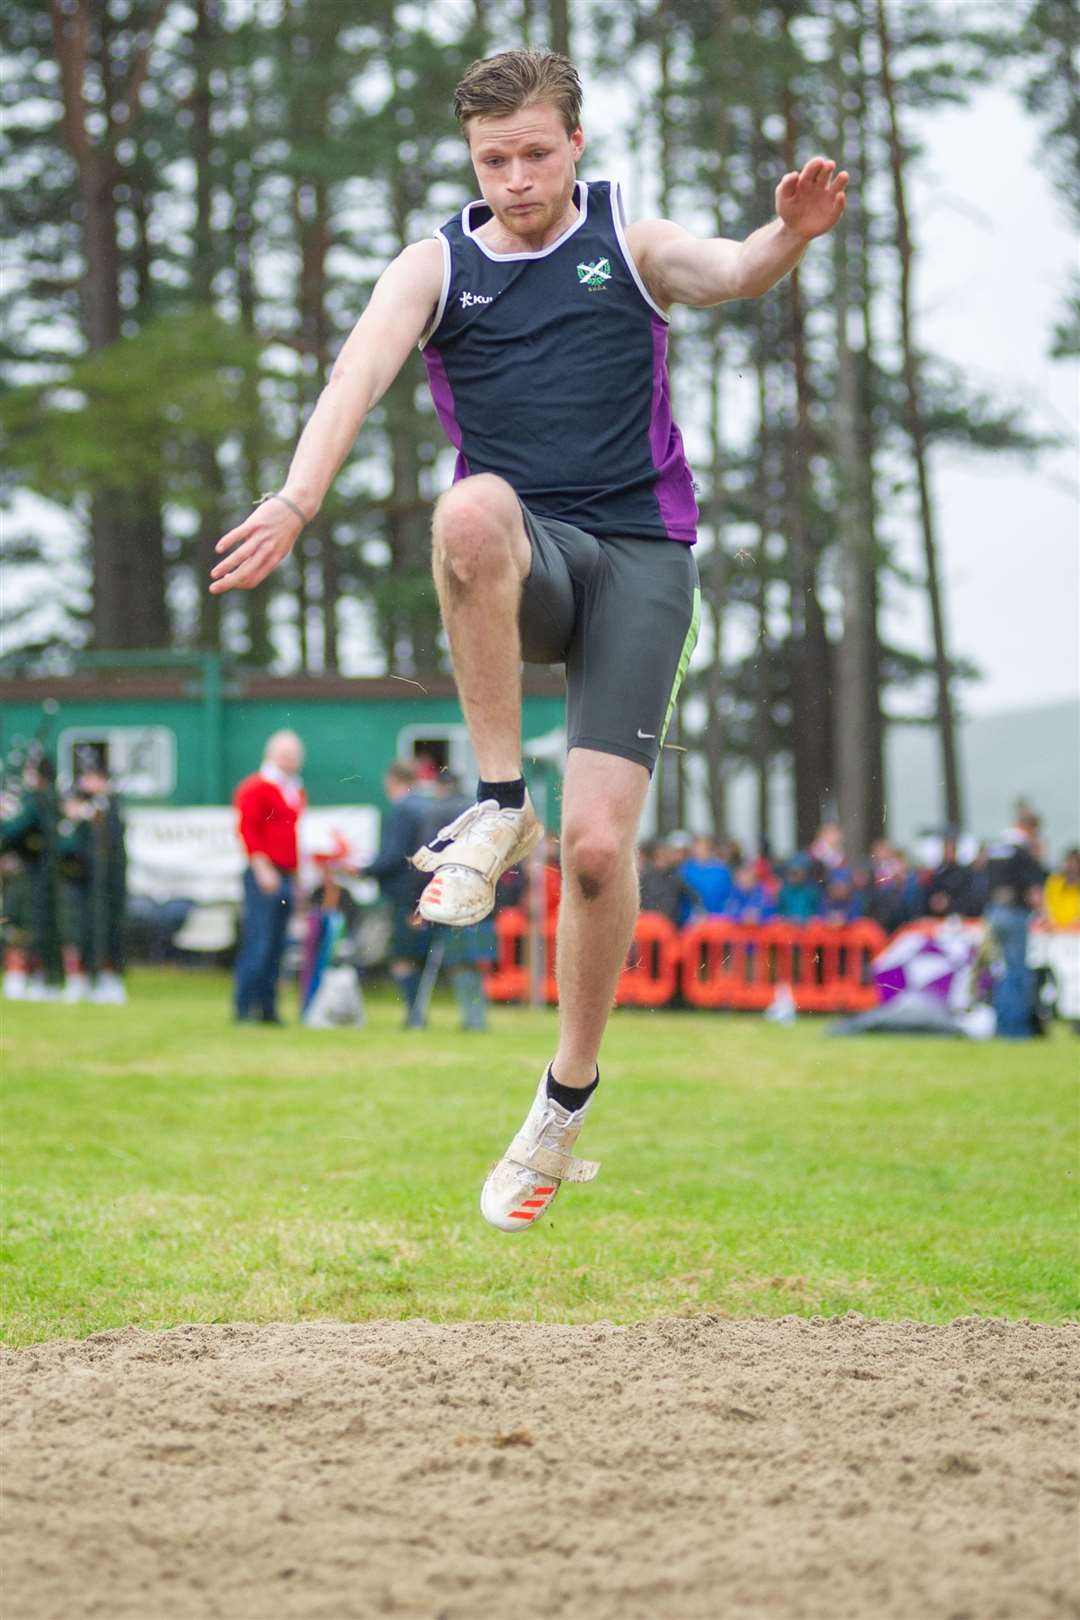 Findlay Donegan from Elgin competes in the long jump. Picture: Daniel Forsyth. Image No.044479.